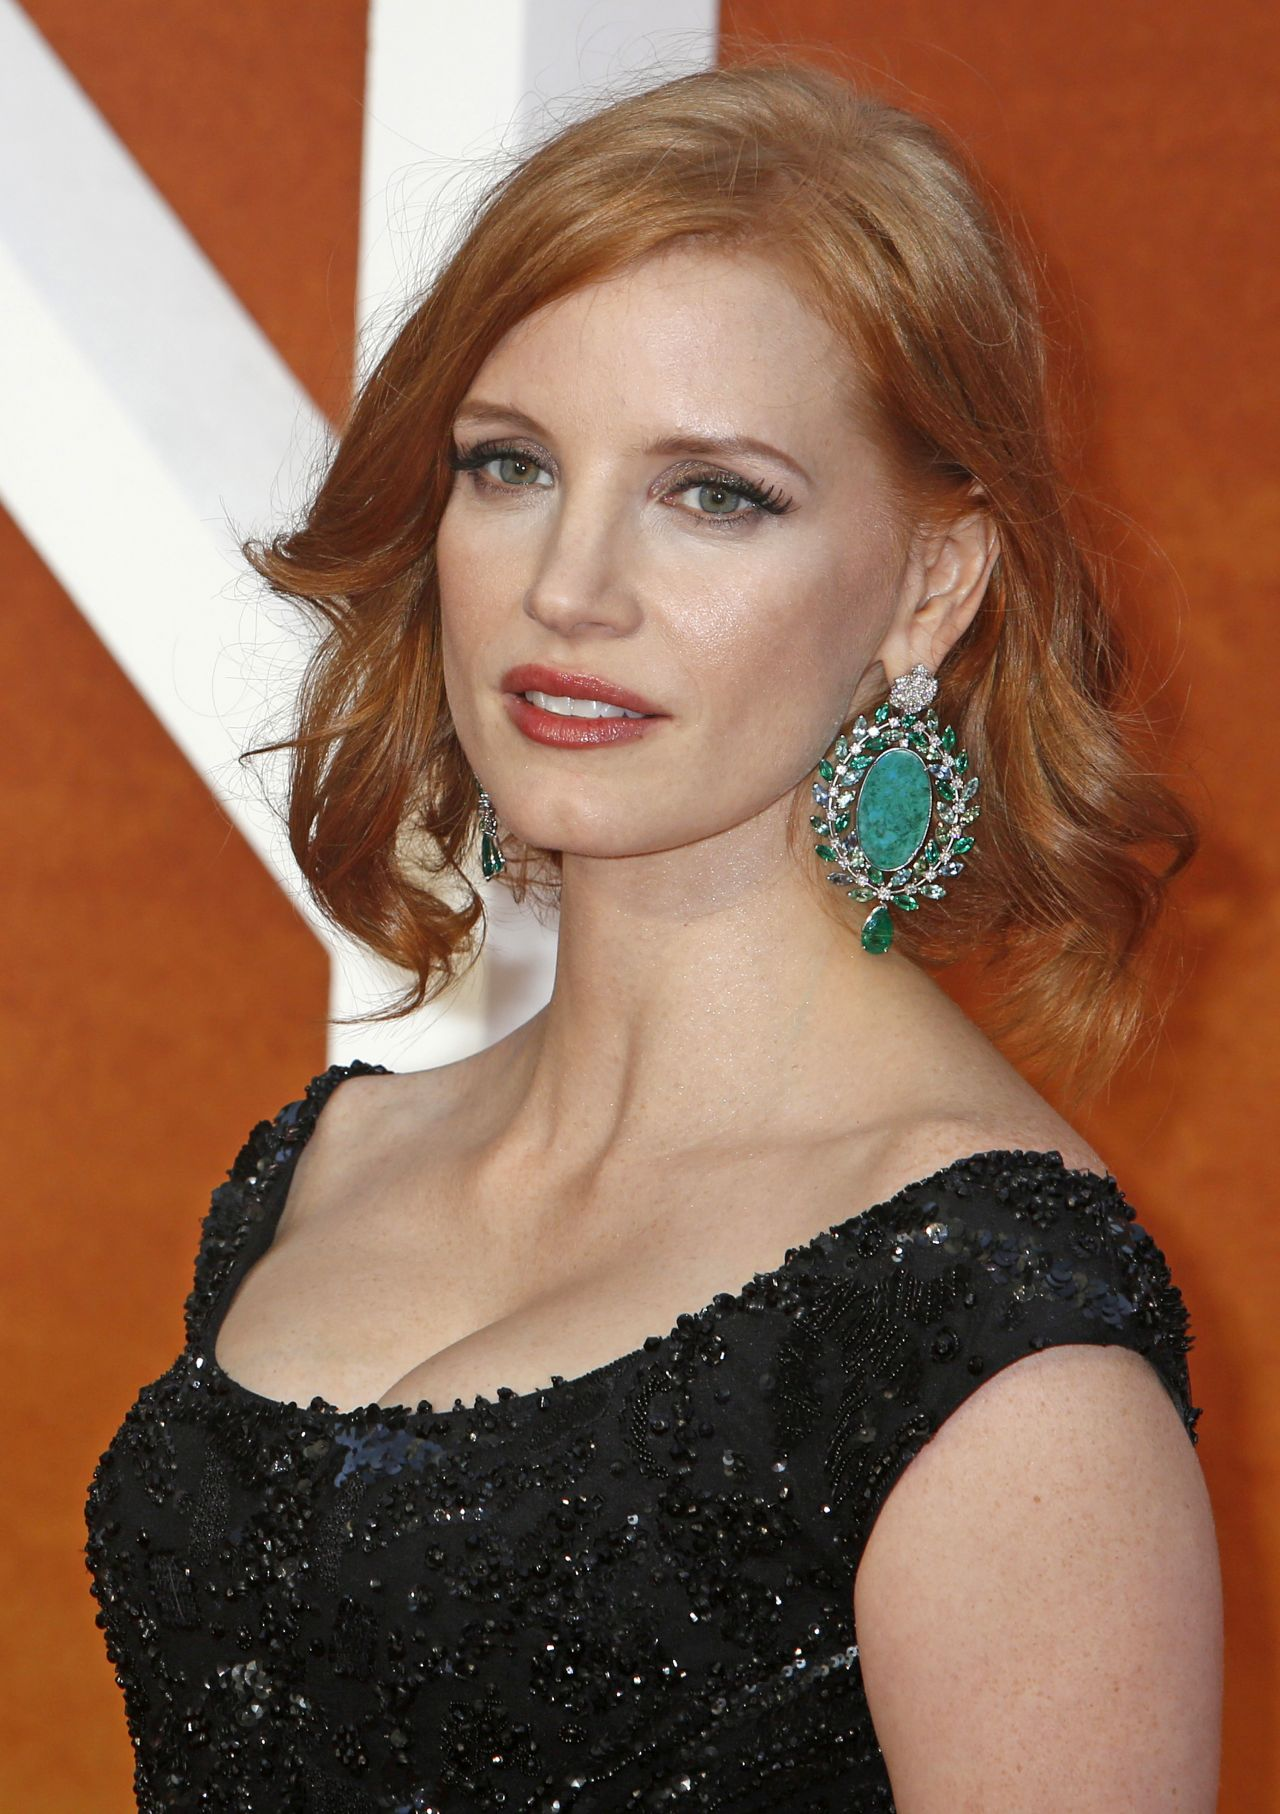 Jessica Chastain on Red Carpet - 'The Martian' Premiere in ... Jessica Chastain